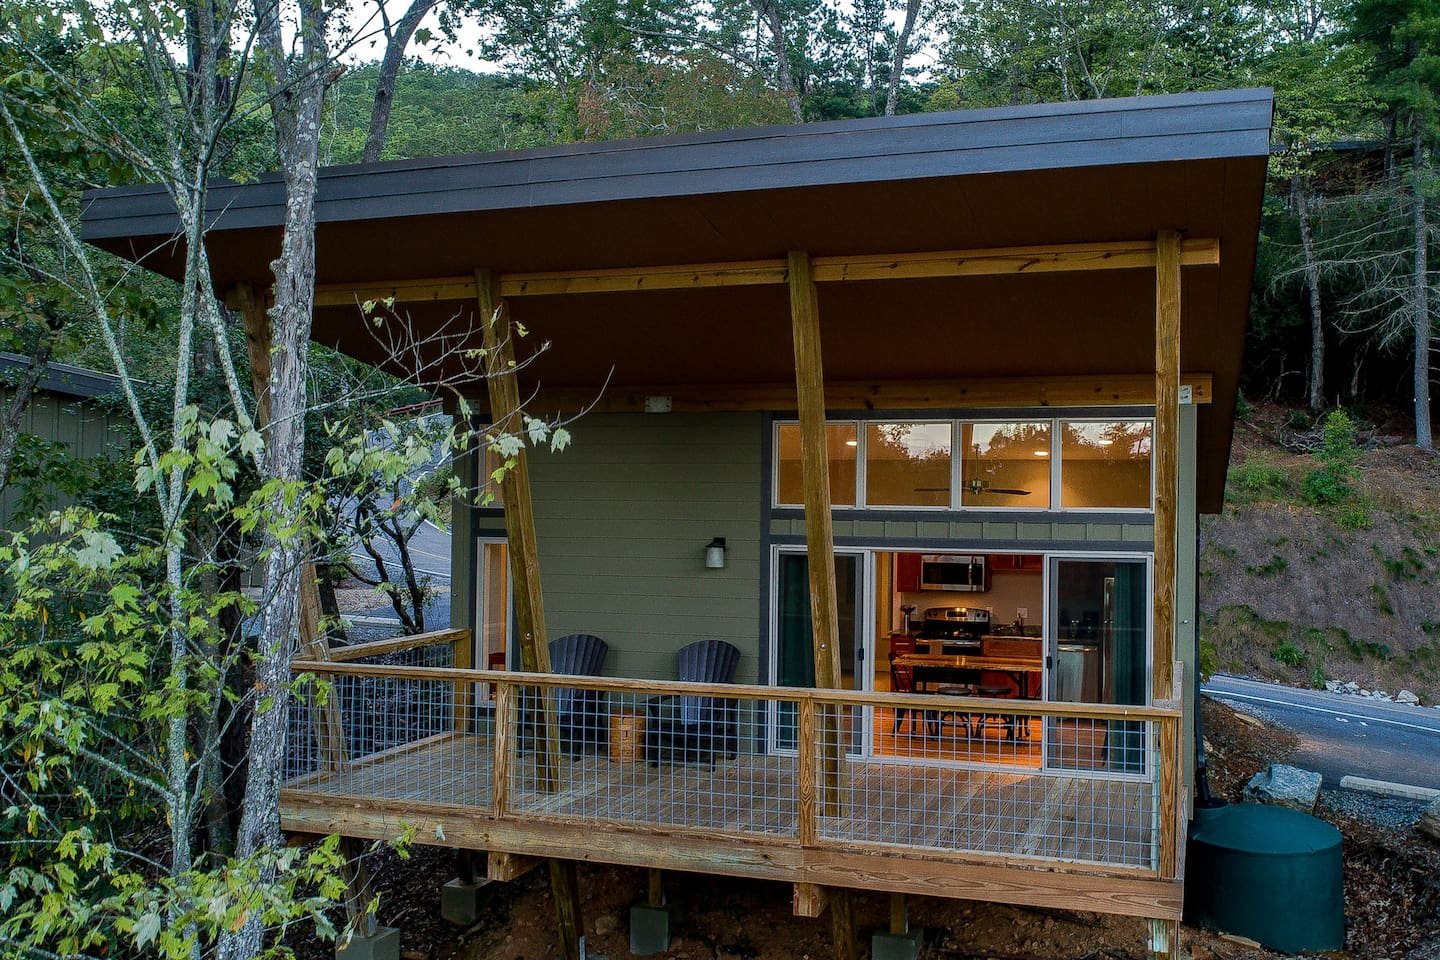 Architect designed cabins were planned to allow guests to interact with the outdoors and surrounding forest.